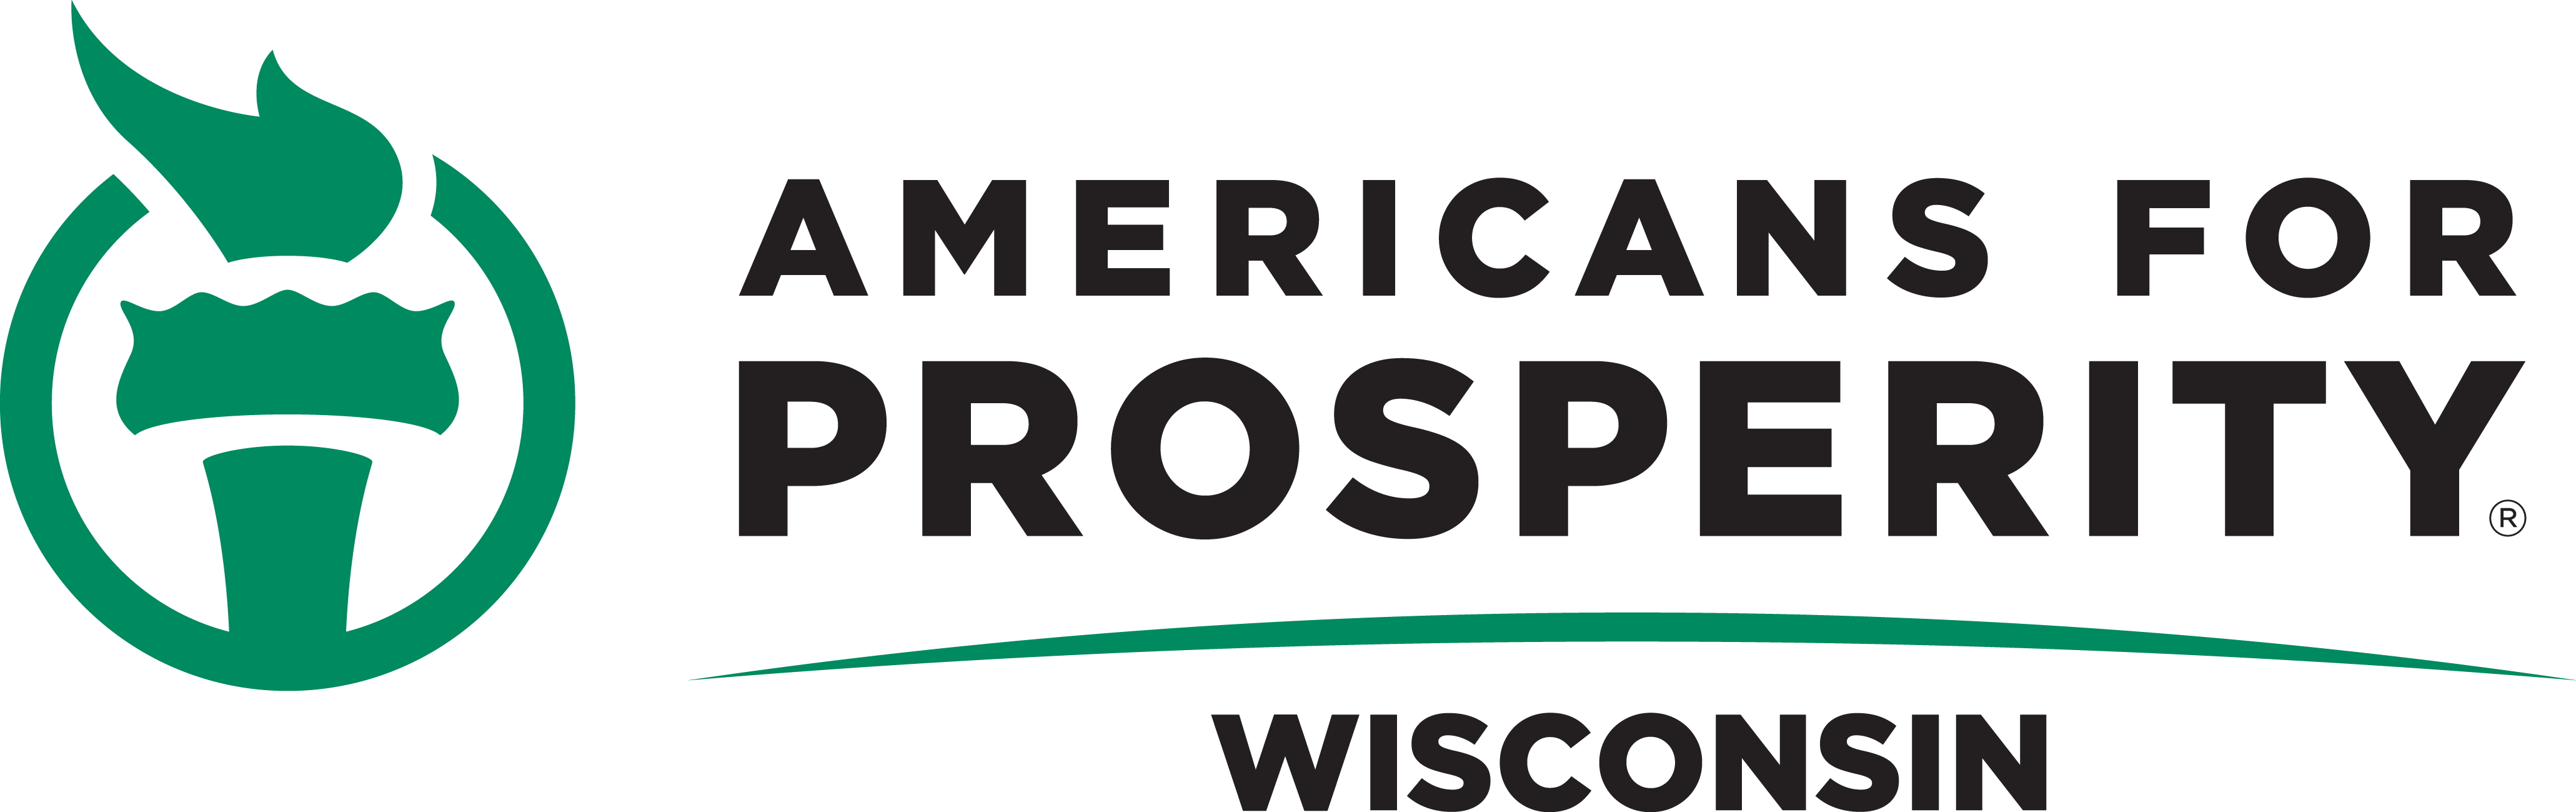 Americans for Prosperity: Protecting Small Businesses Helps Wisconsin Recover Stronger